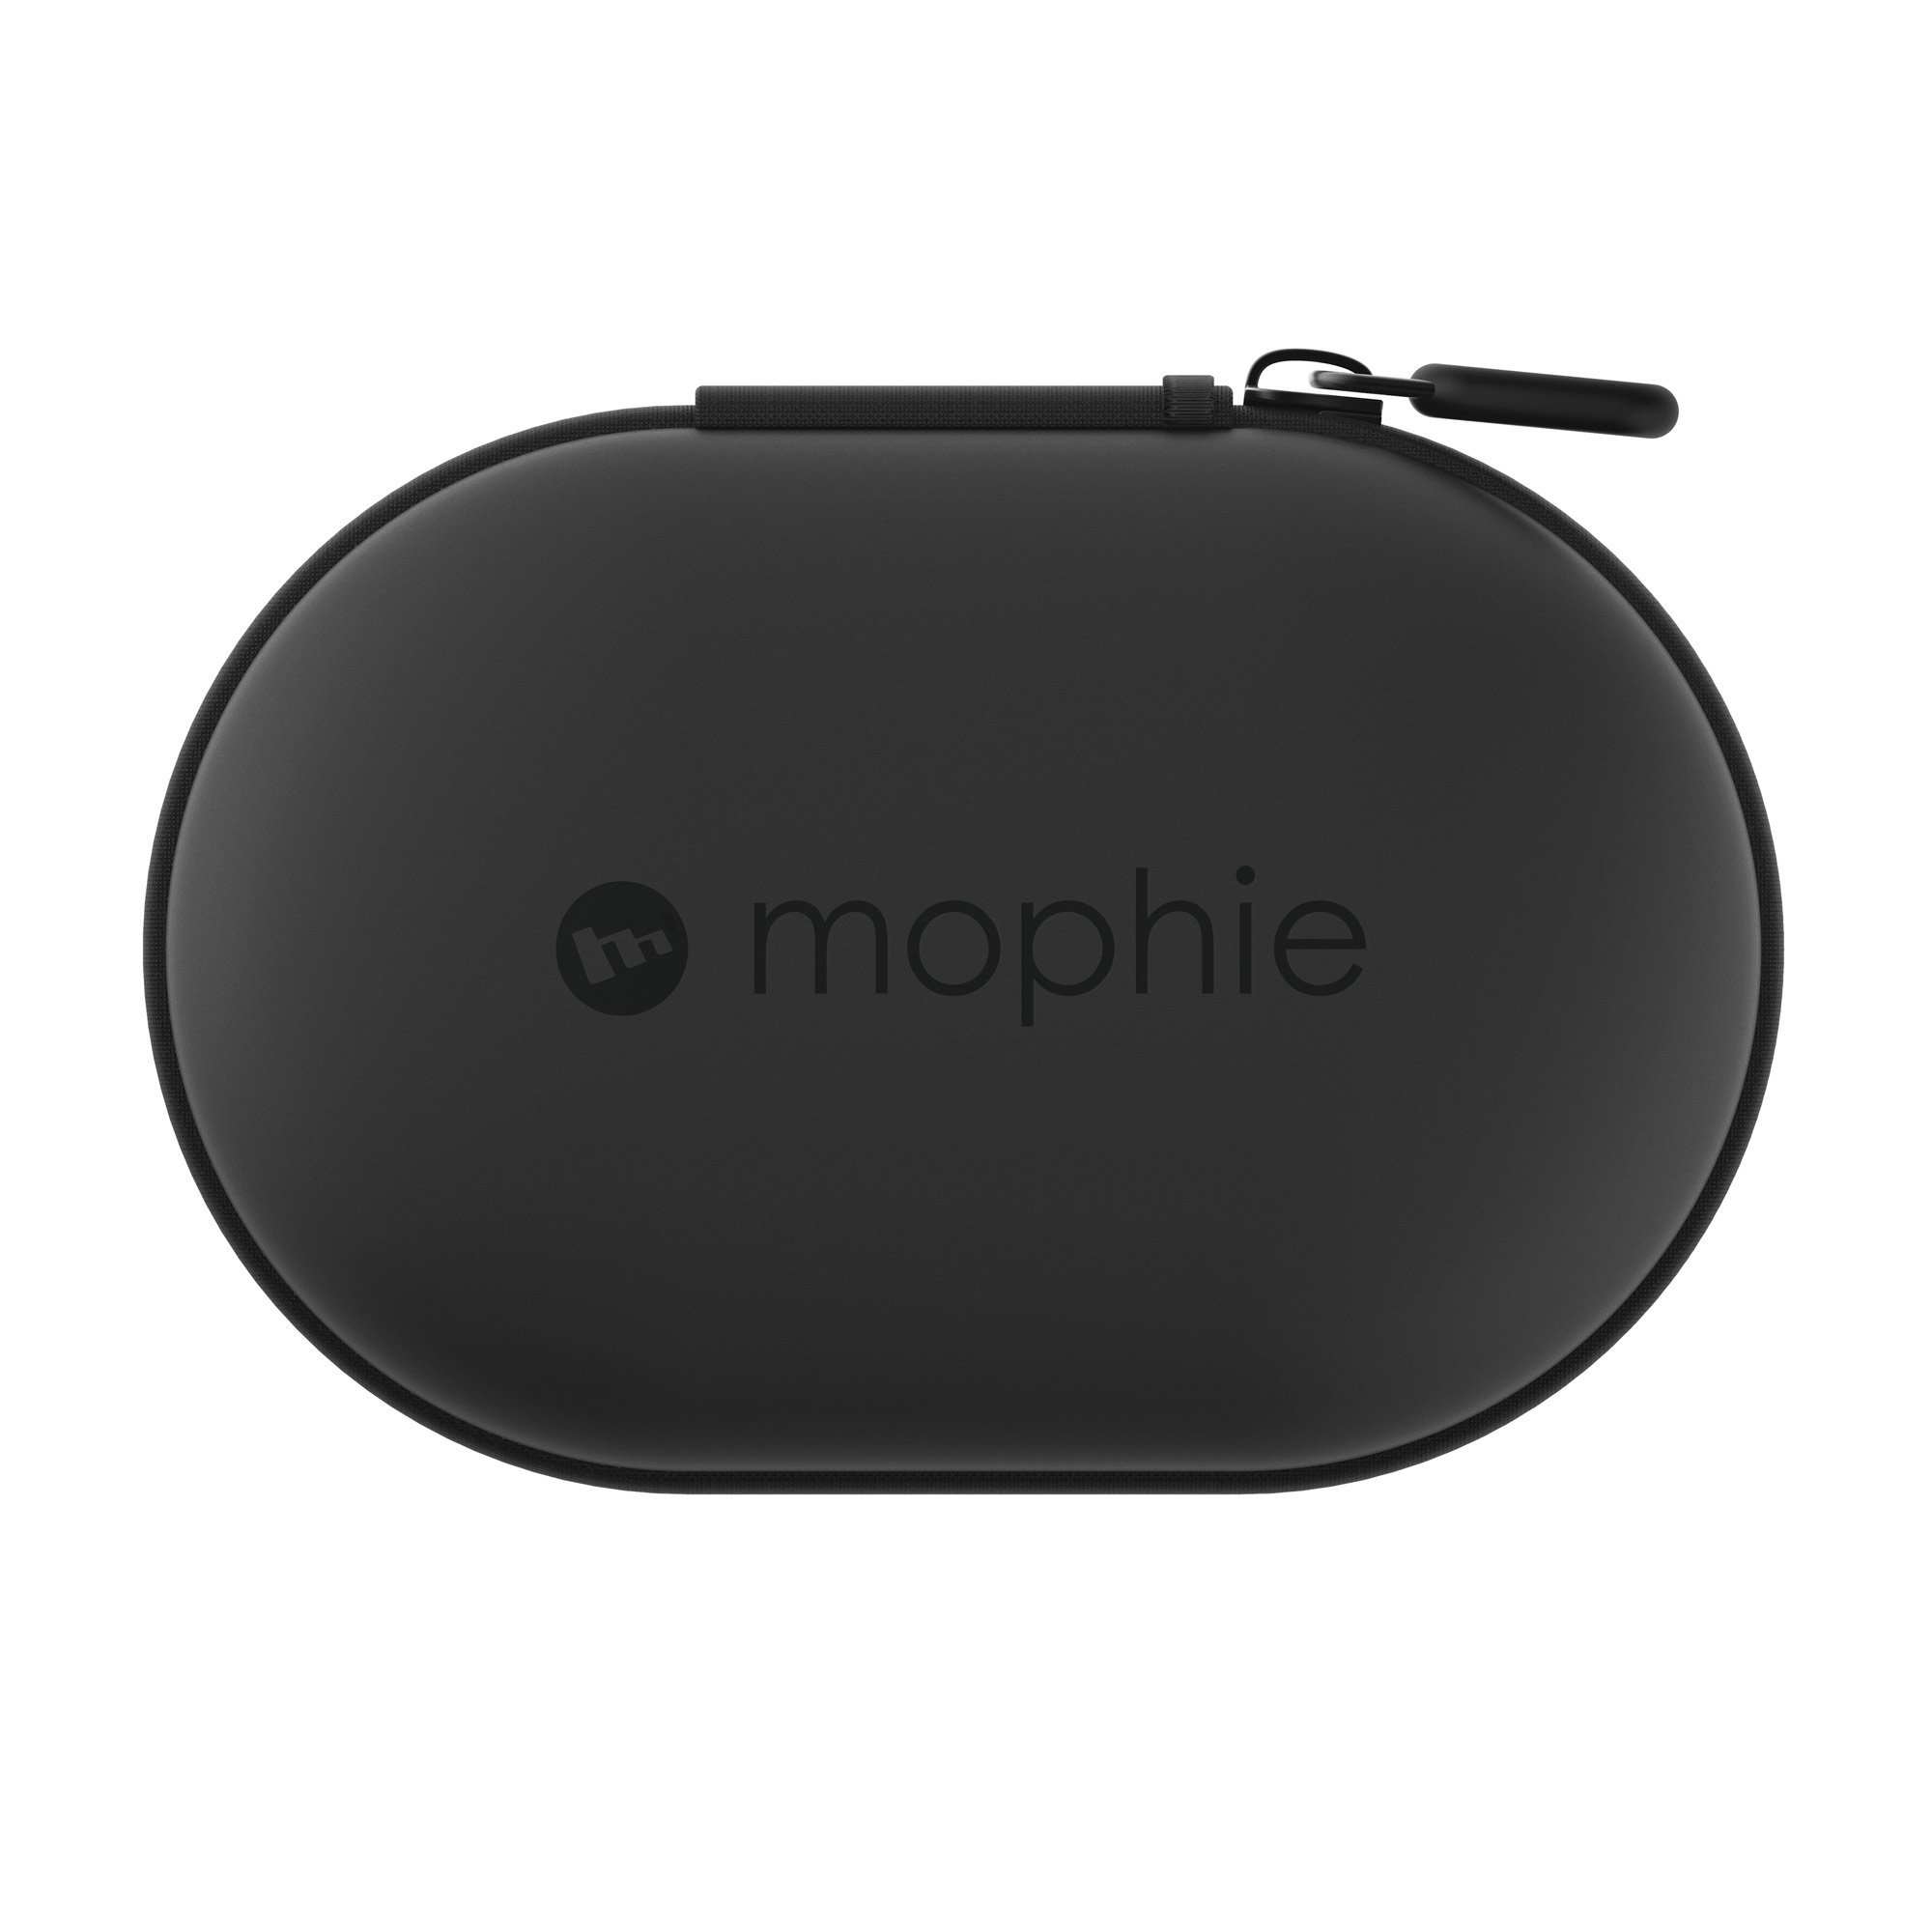 mophie Power Capsule External Battery Charger for Fitbit Flex, Beats by Dre, JBL Wireless Earbuds - Black (Renewed) by mophie